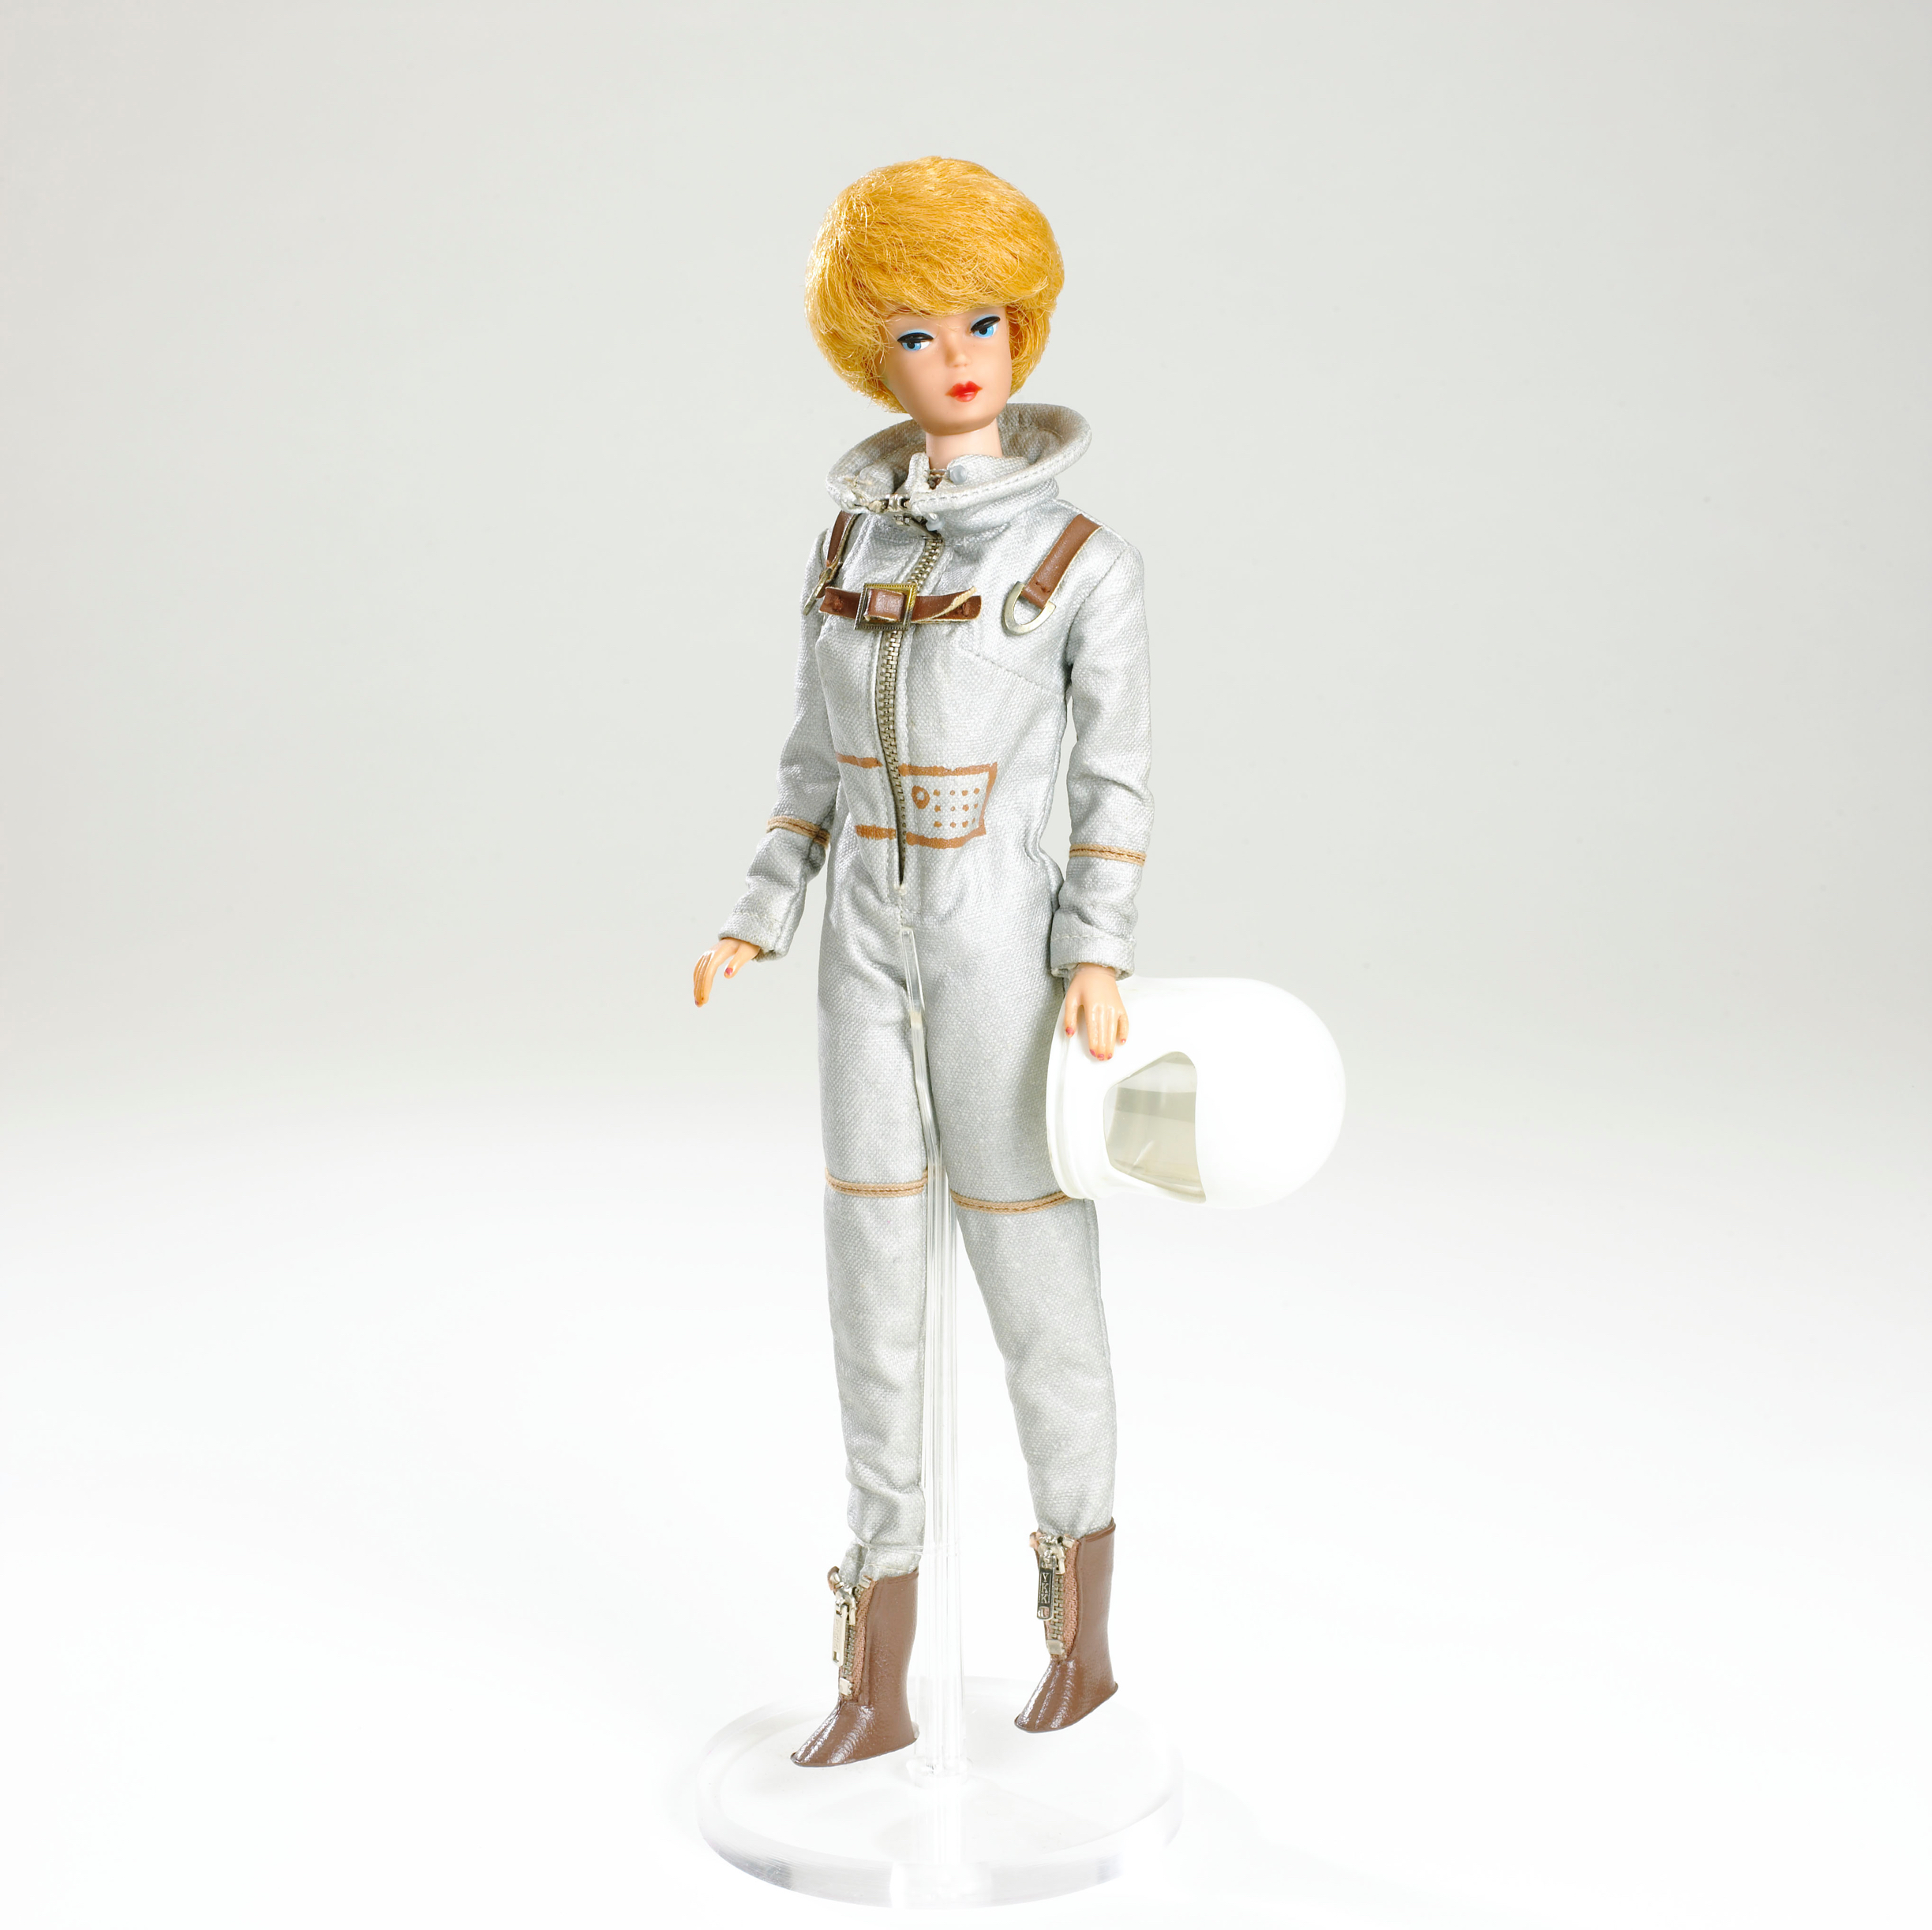 new nasa astronaut barbie - photo #22